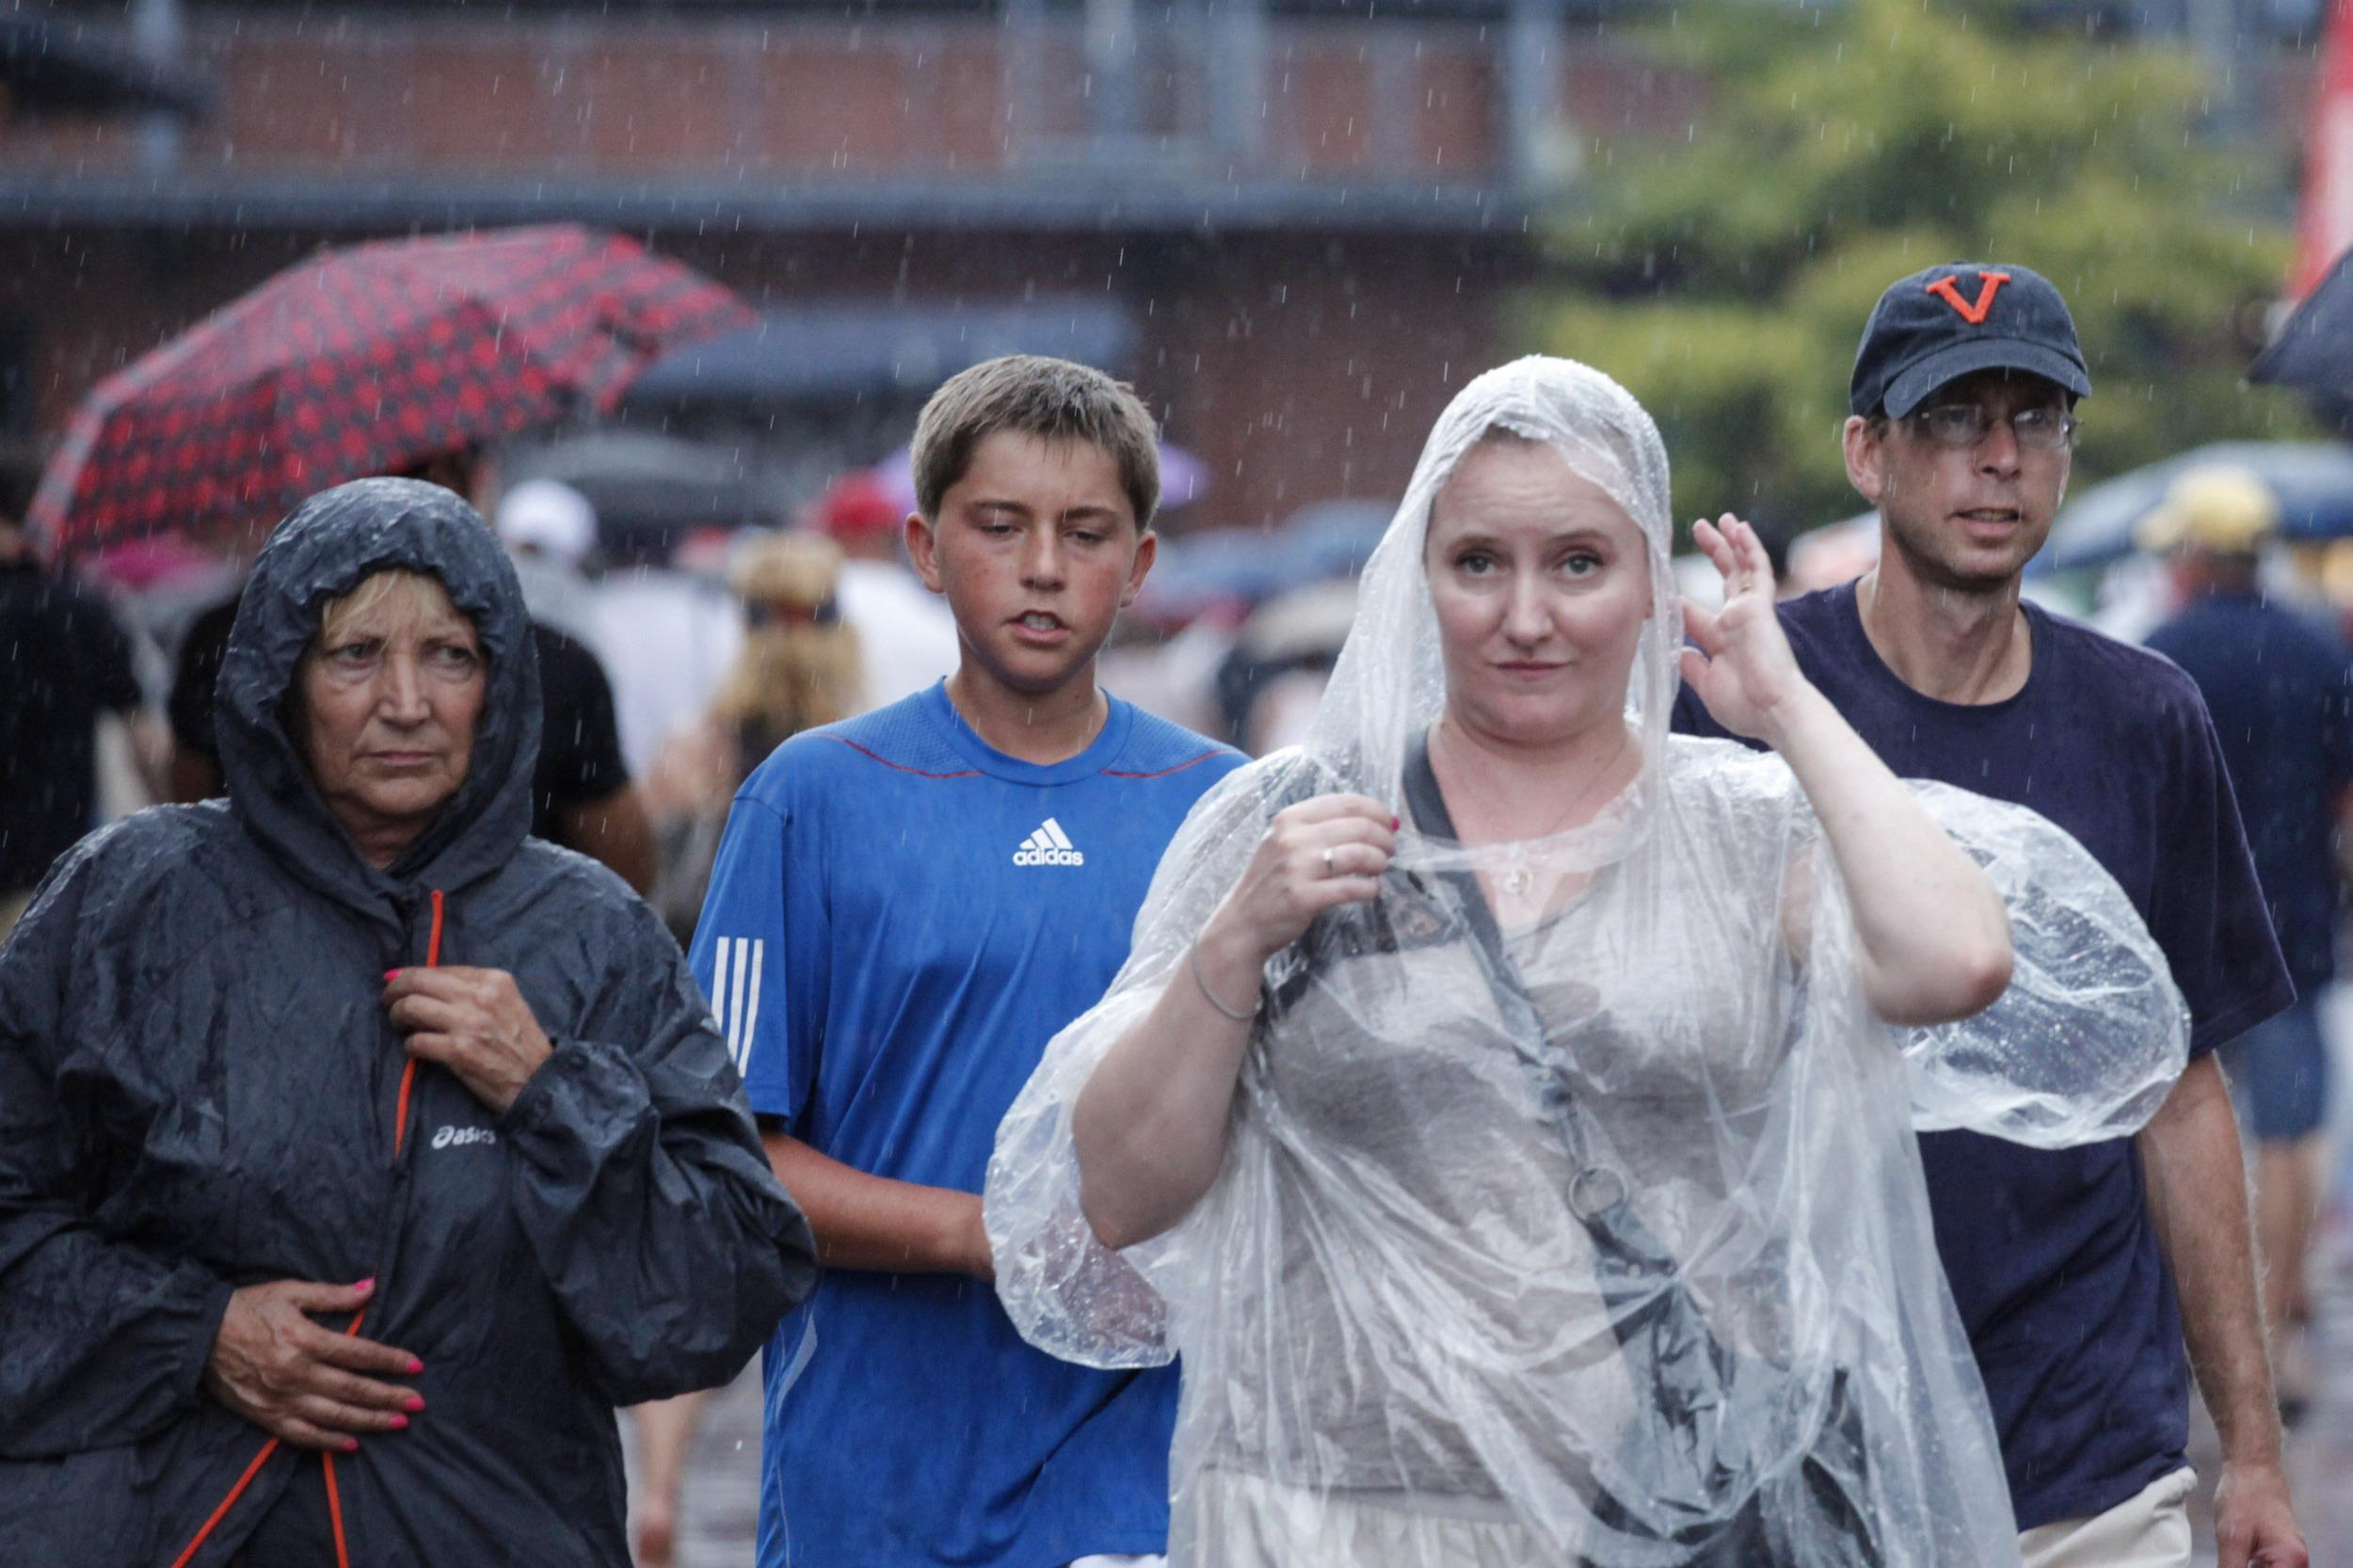 Image: U.S. Open fans get drenched